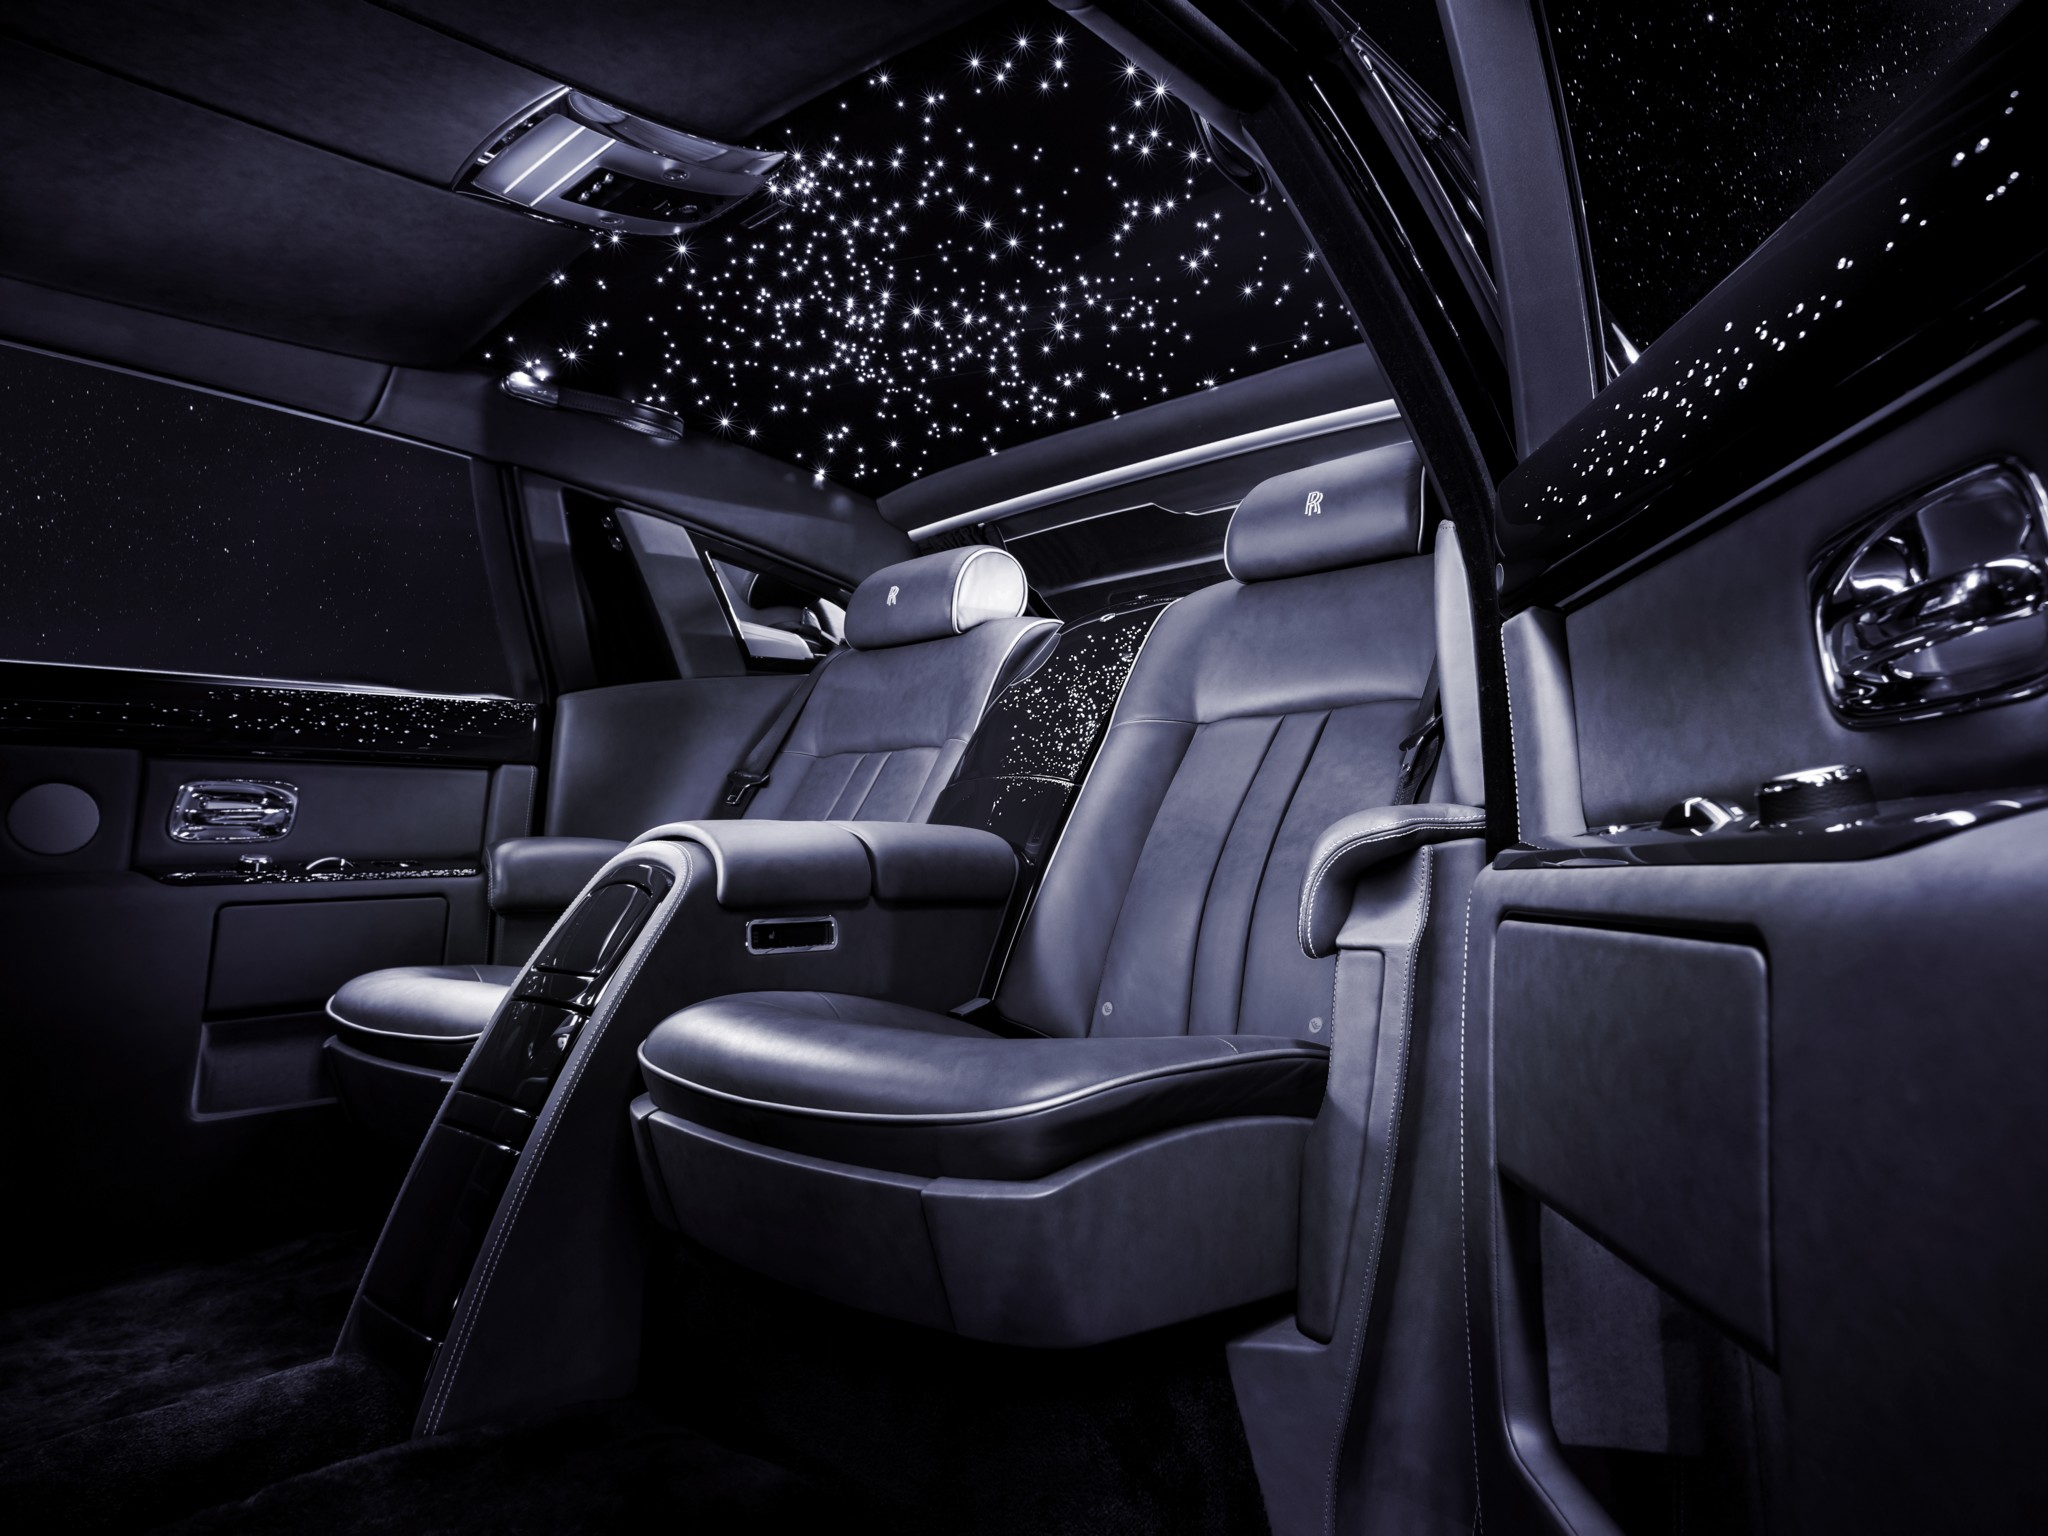 2013 Rolls Royce Phantom Celestial Luxury Interior Wallpapers Hd Desktop And Mobile Backgrounds